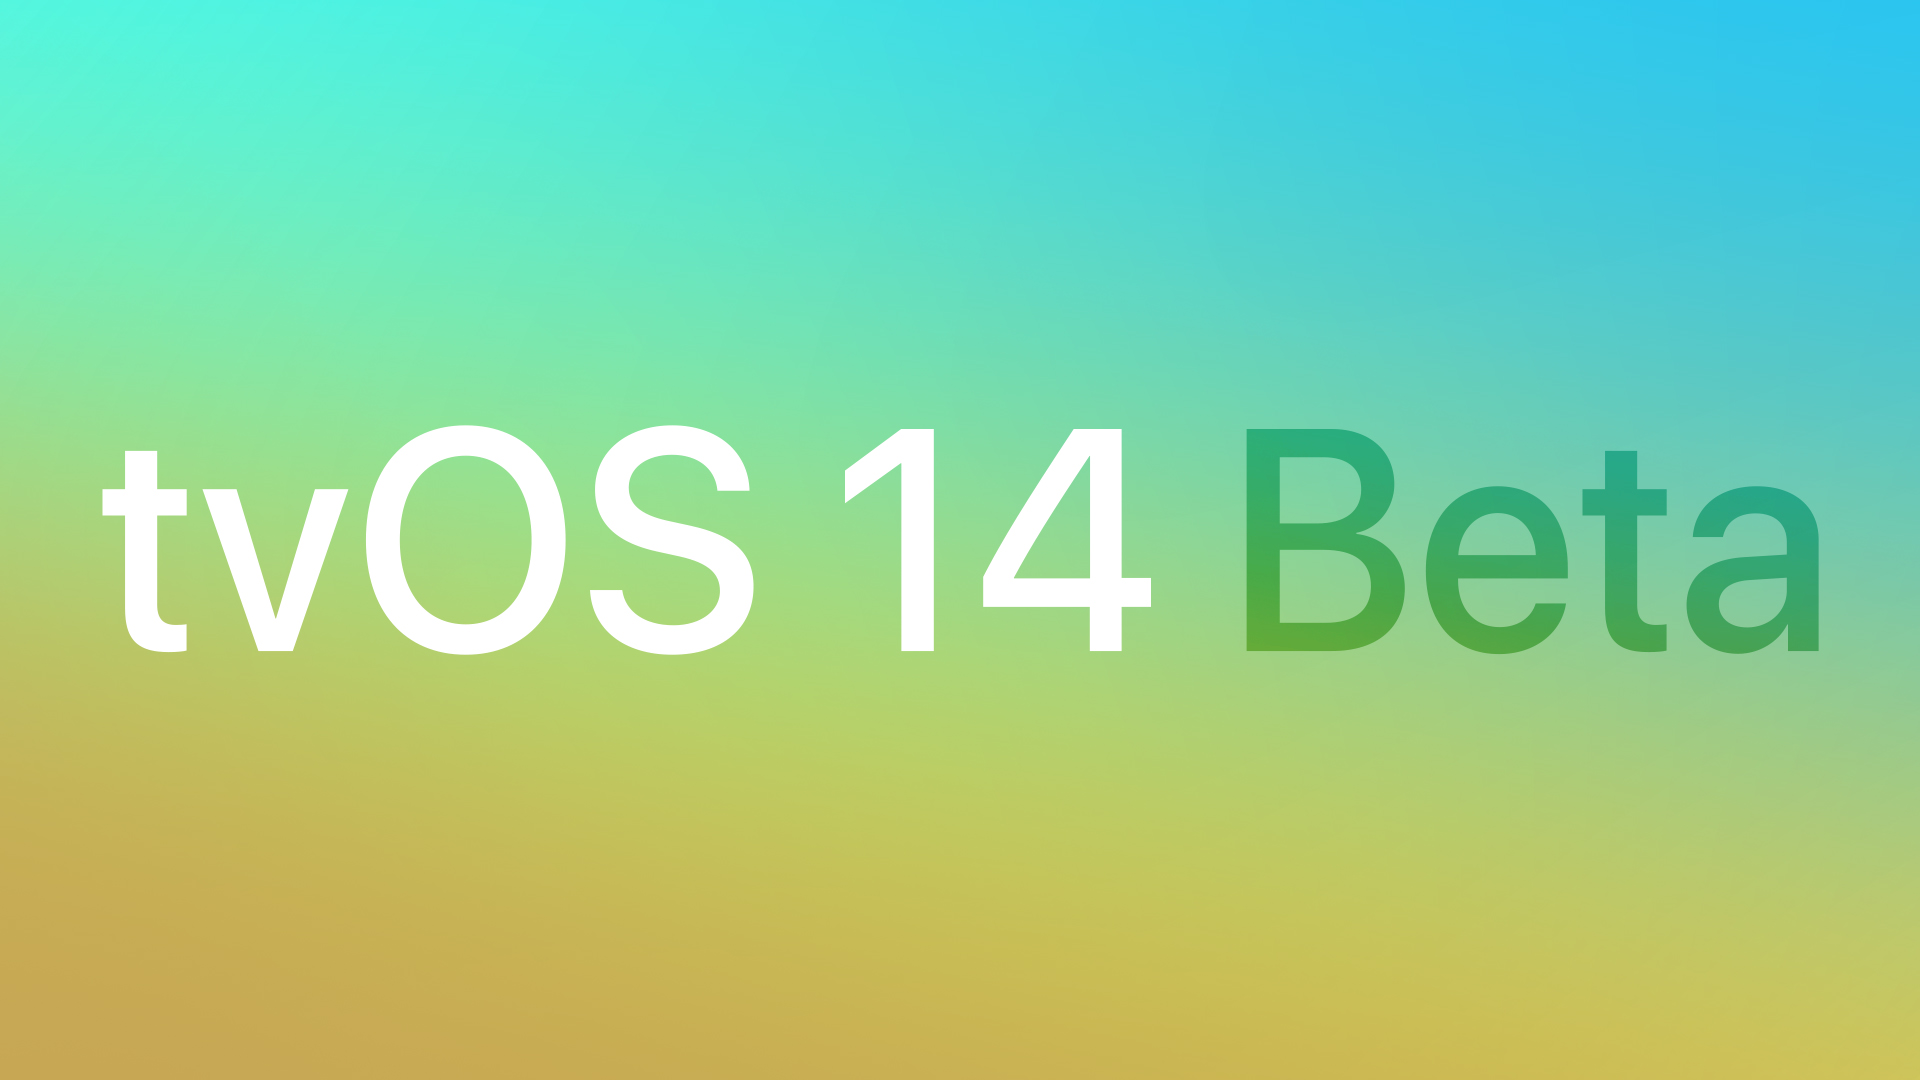 Apple Seeds Fourth Beta of tvOS 14 to Developers